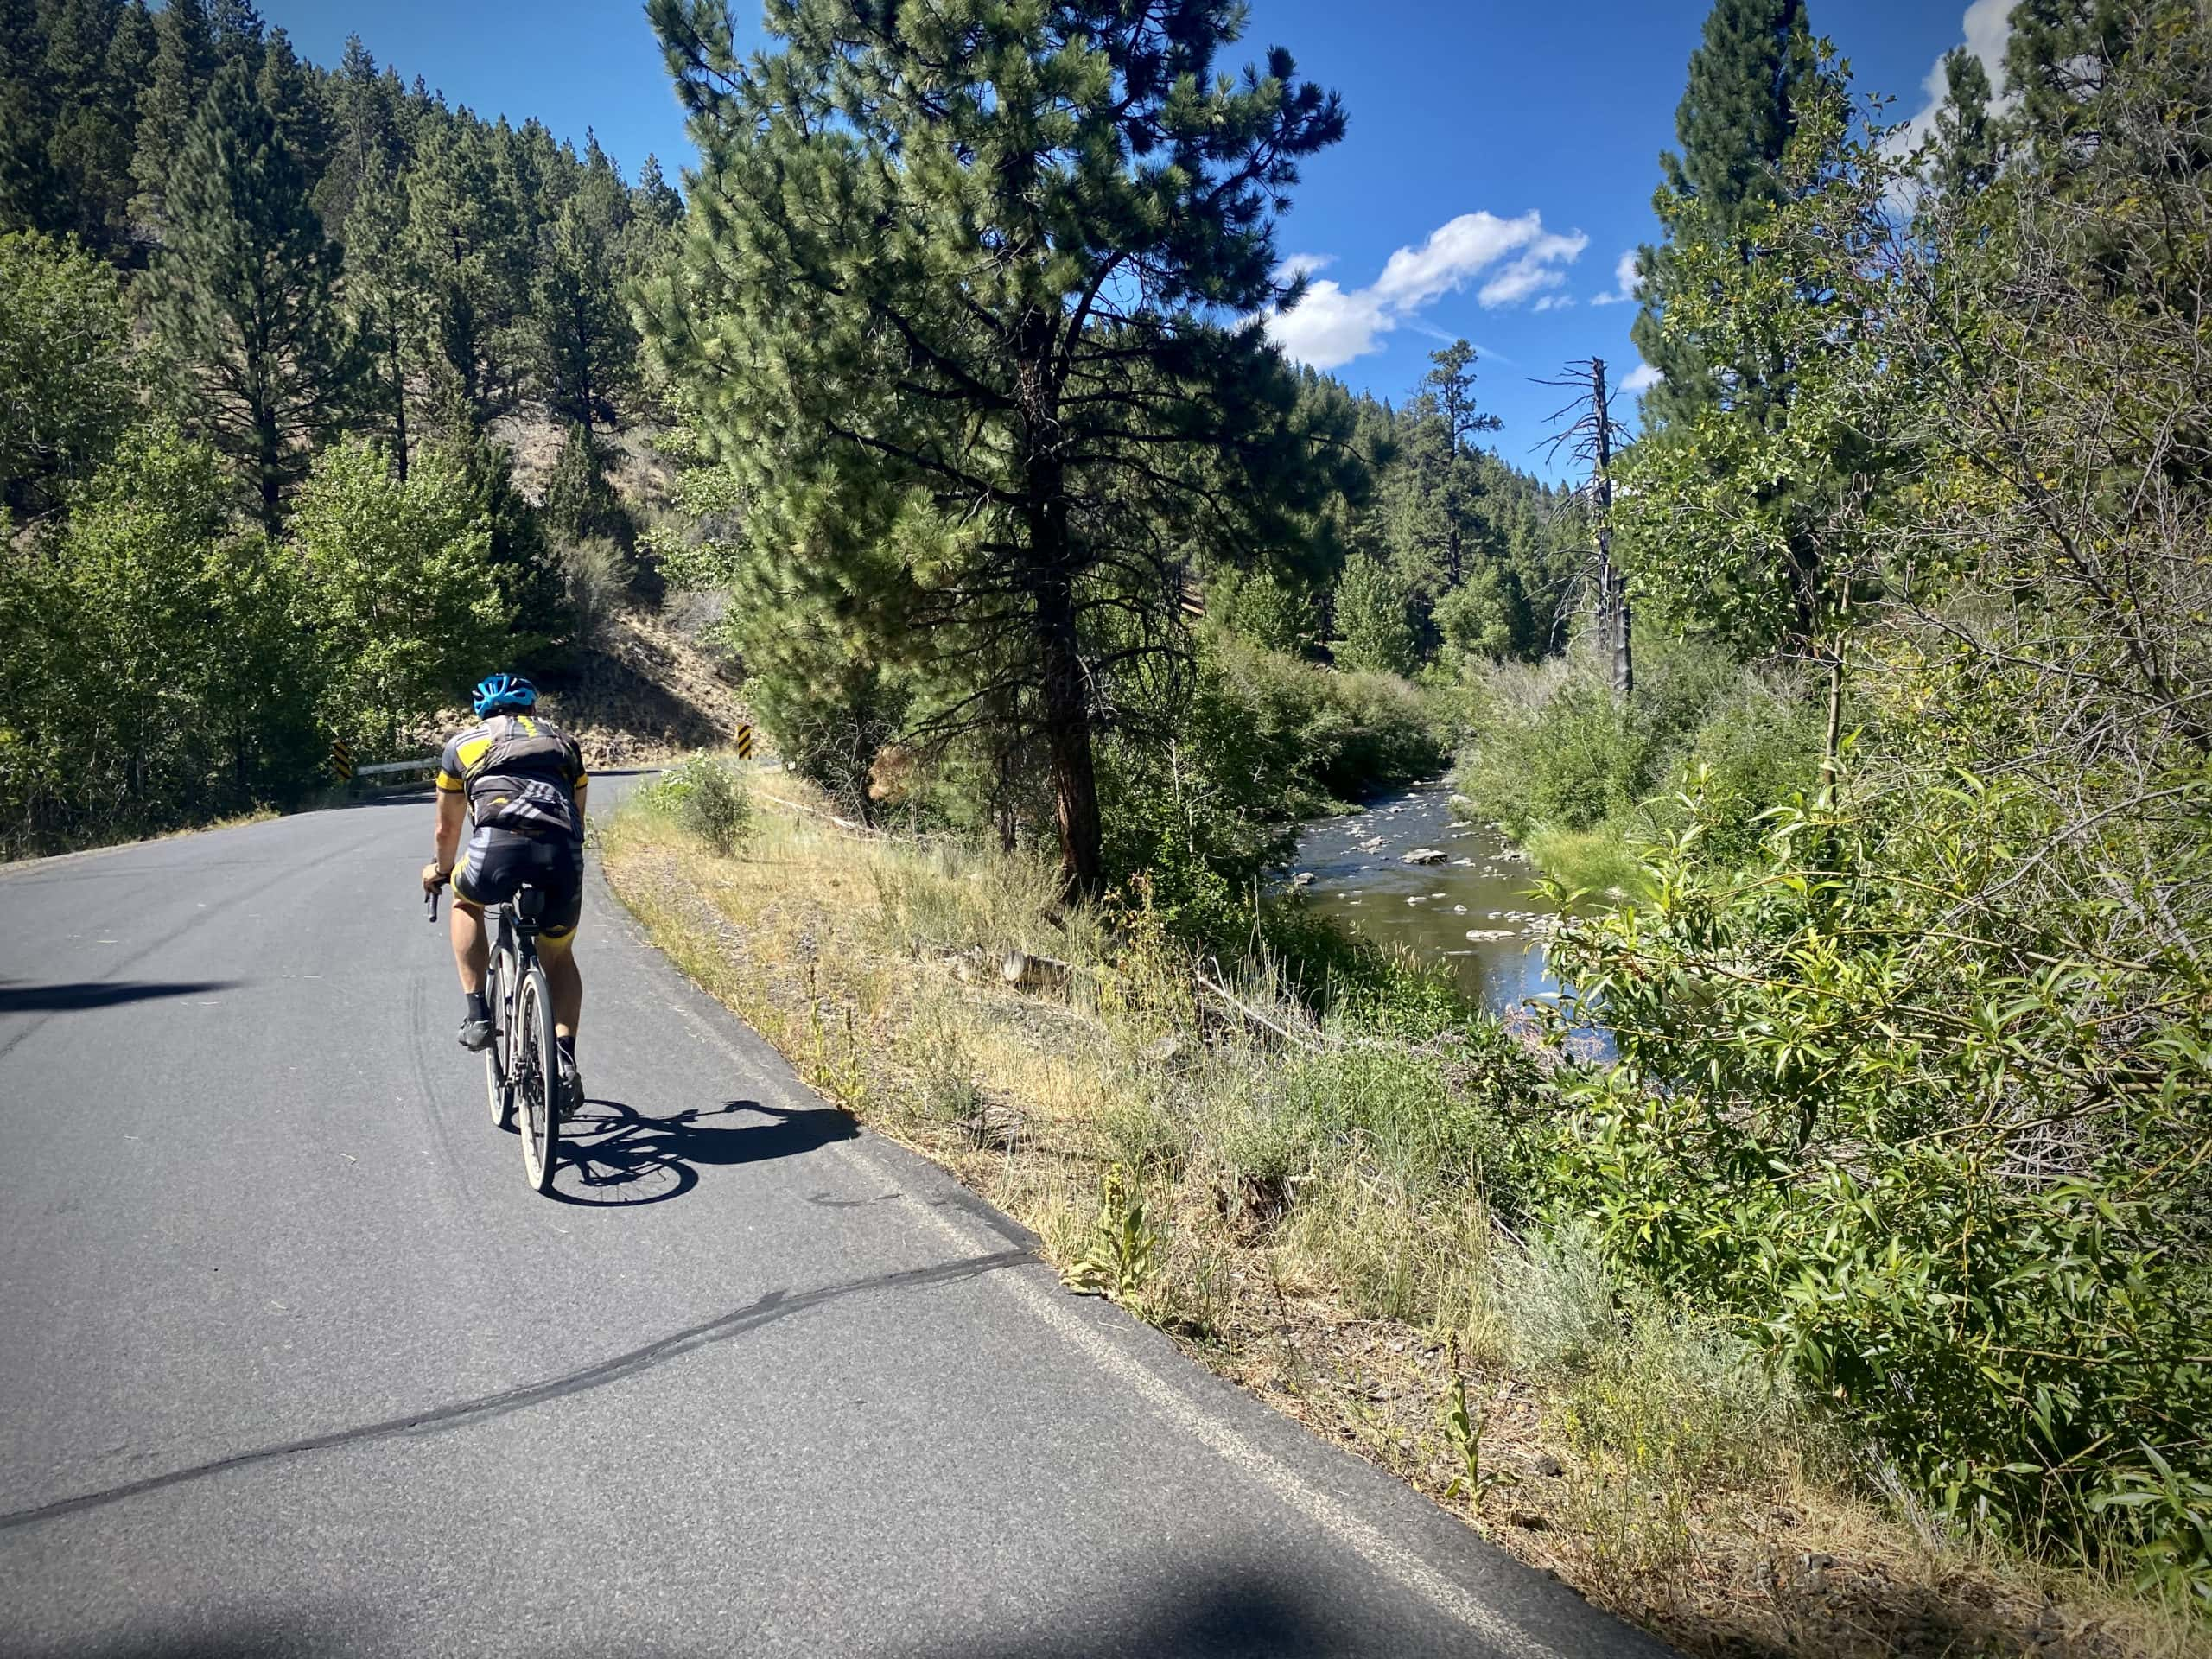 Cyclist riding next to Chewaucan River in Lake County, Oregon.